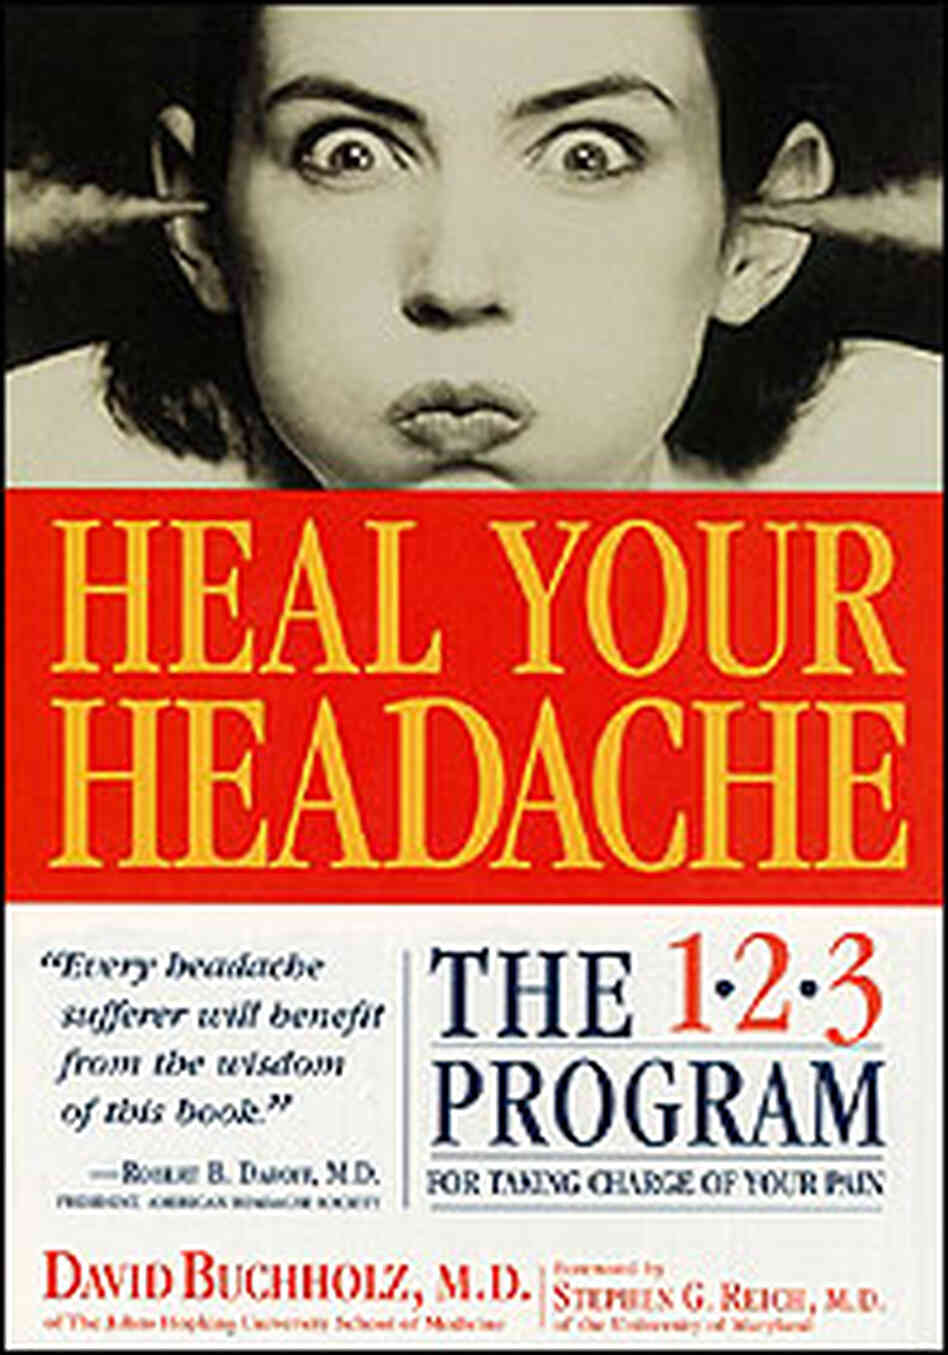 Cover from David Buchholz' book, Heal Your Headache